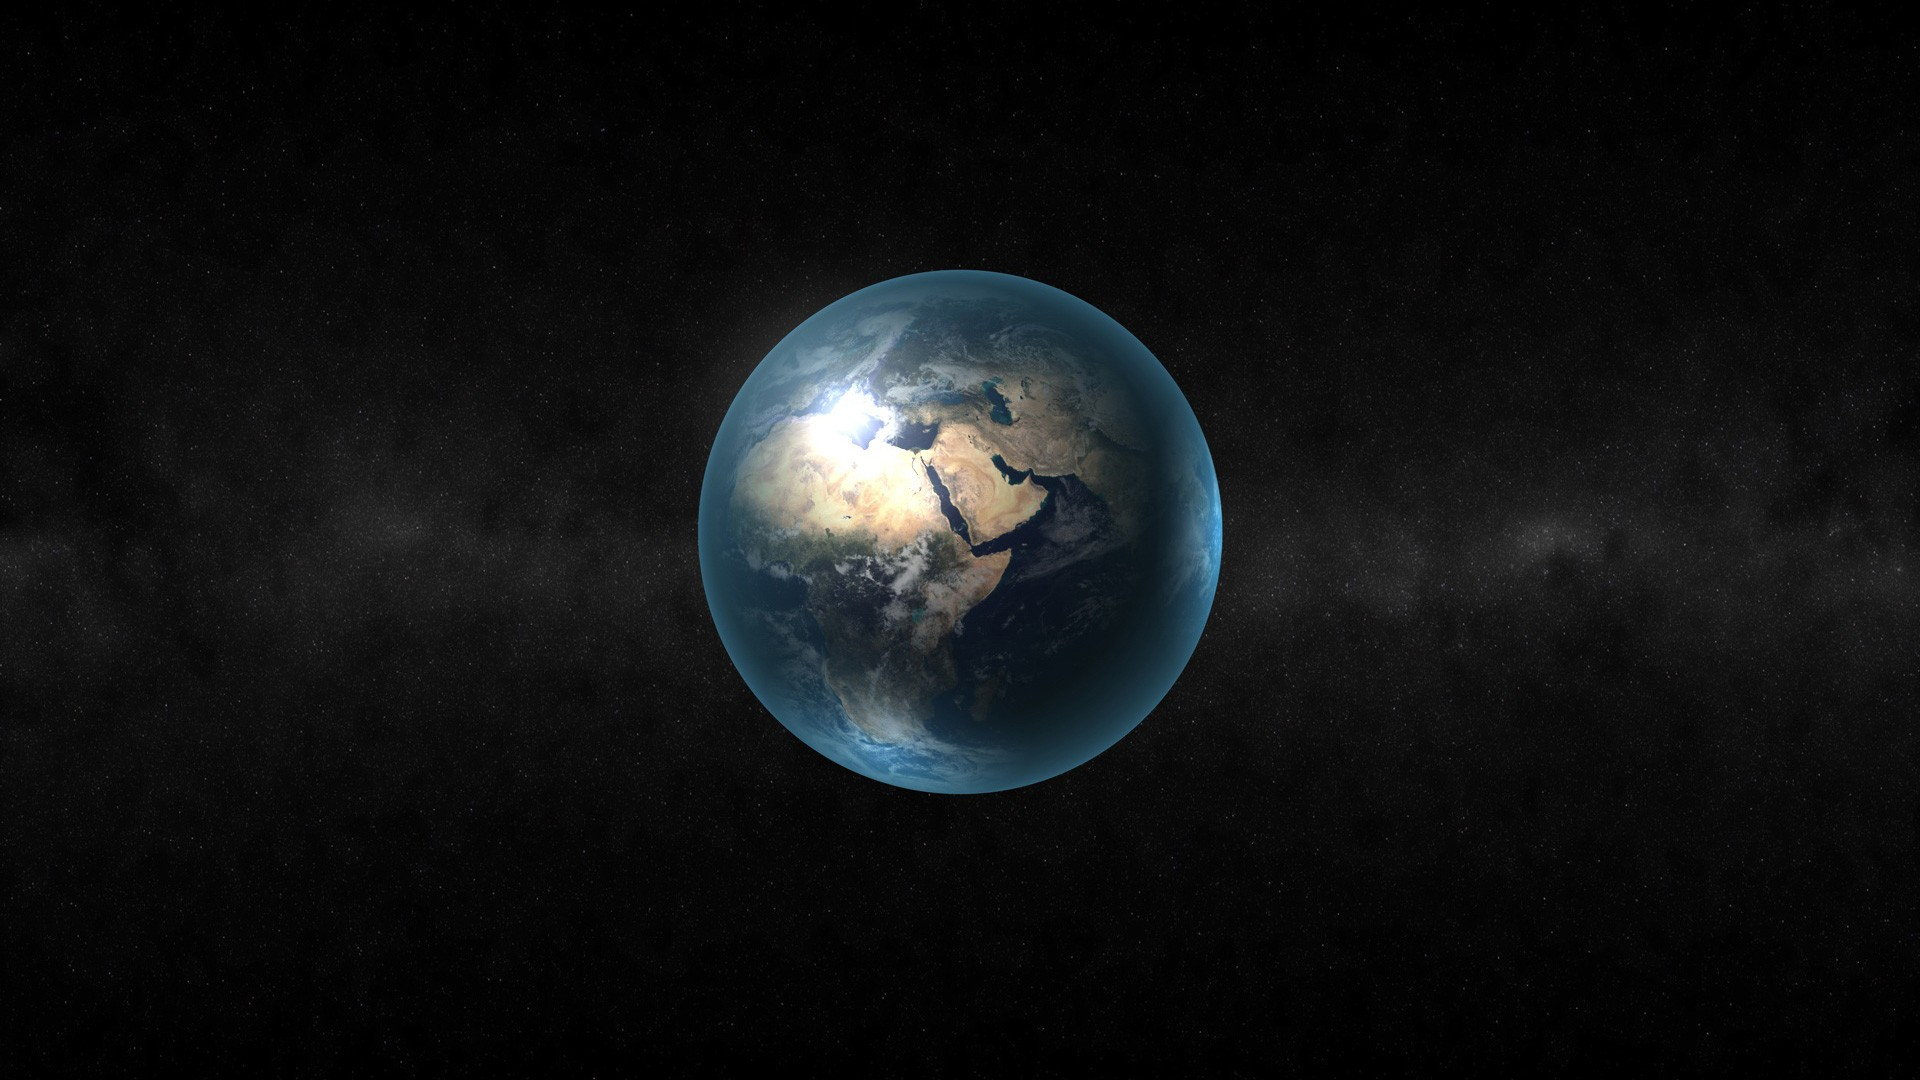 Original Iphone Wallpaper Earth Hd Planet Earth Wallpapers Hd Wallpapers Id 6458